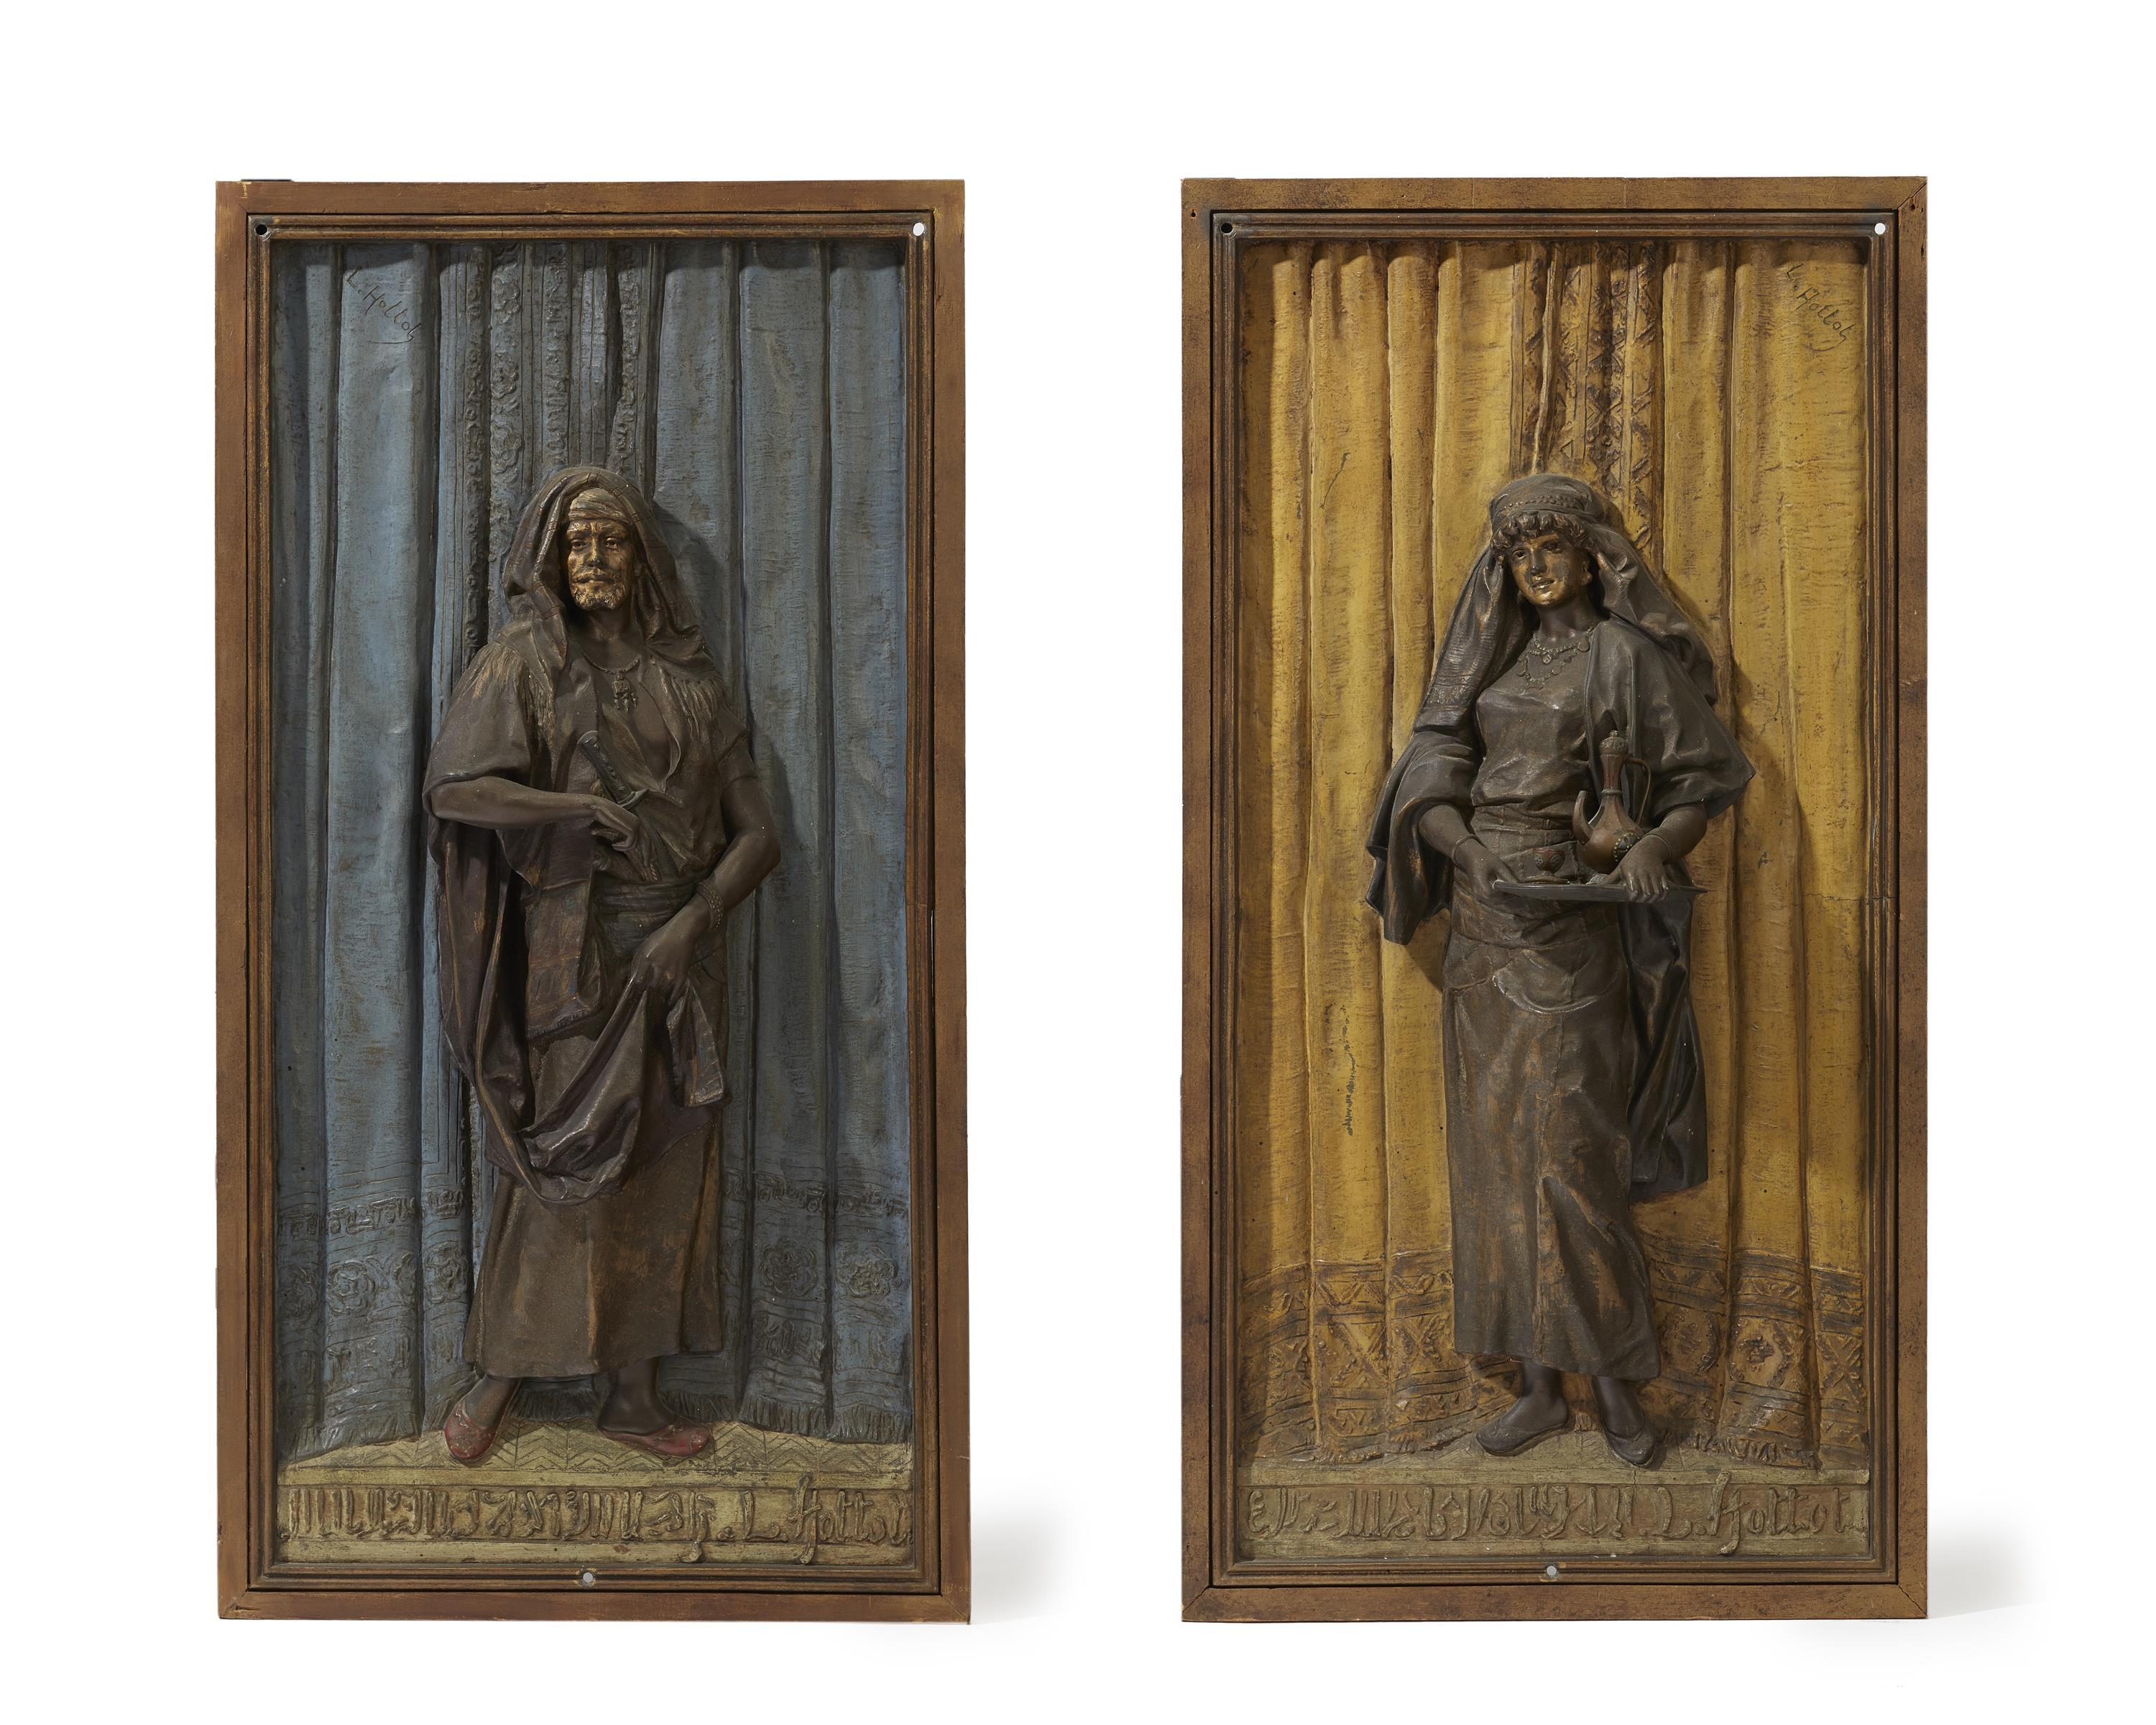 "Louis Hottot, (1829-1905 French), A pair of Orientalist wall plaques, Cold-painted bronze, Each plaque approximately: 23"" H x 16.5"" W x"